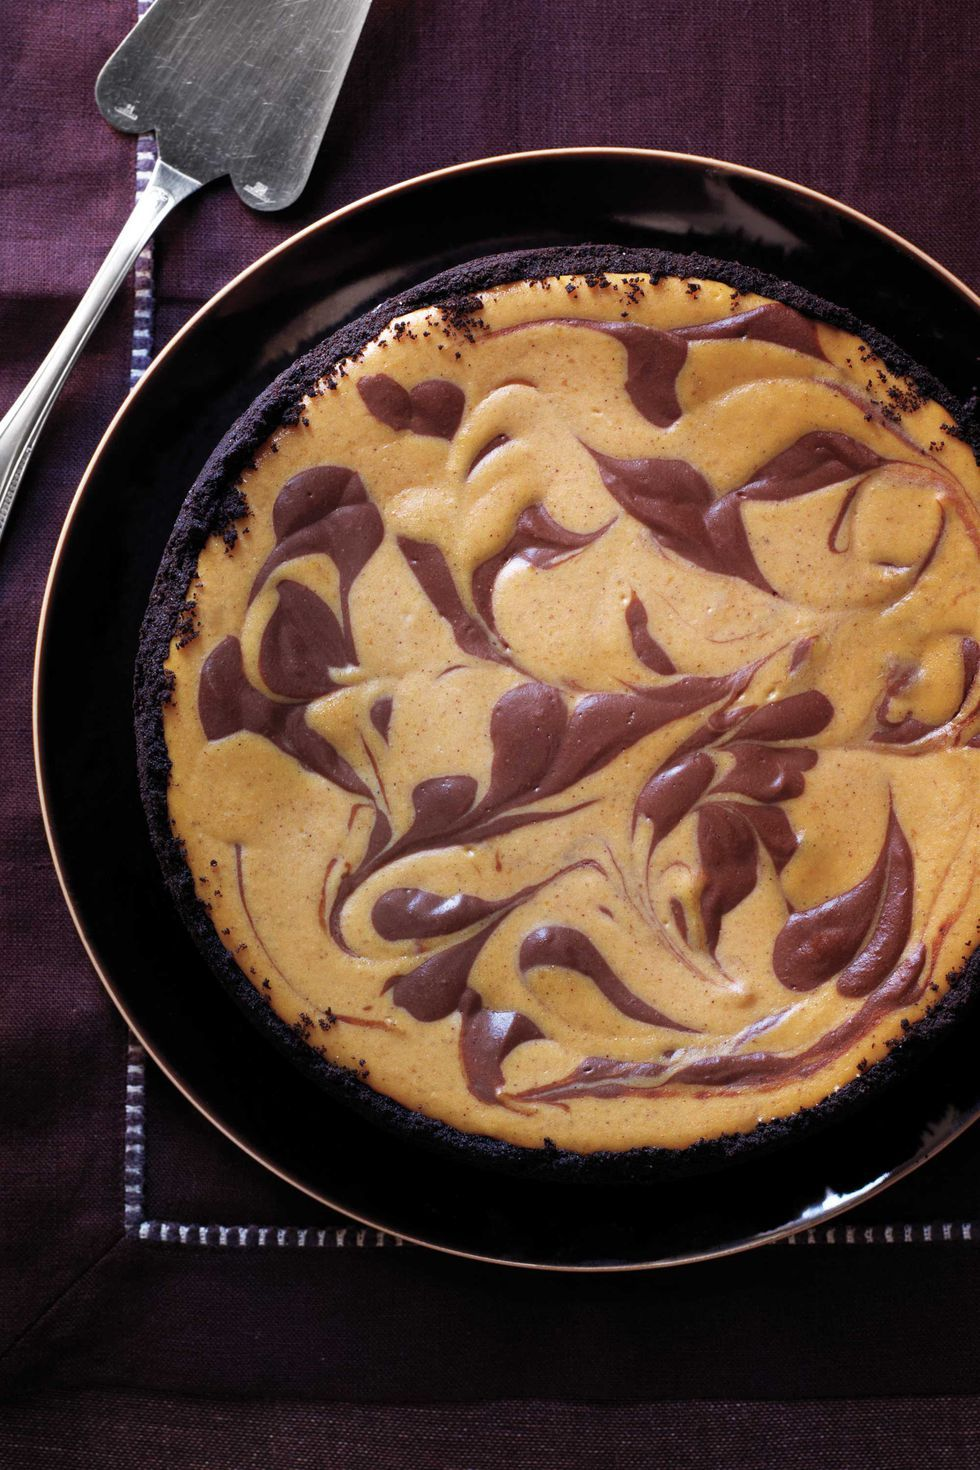 Swirled Pumpkin and Chocolate Cheesecake Thanksgiving Dessert